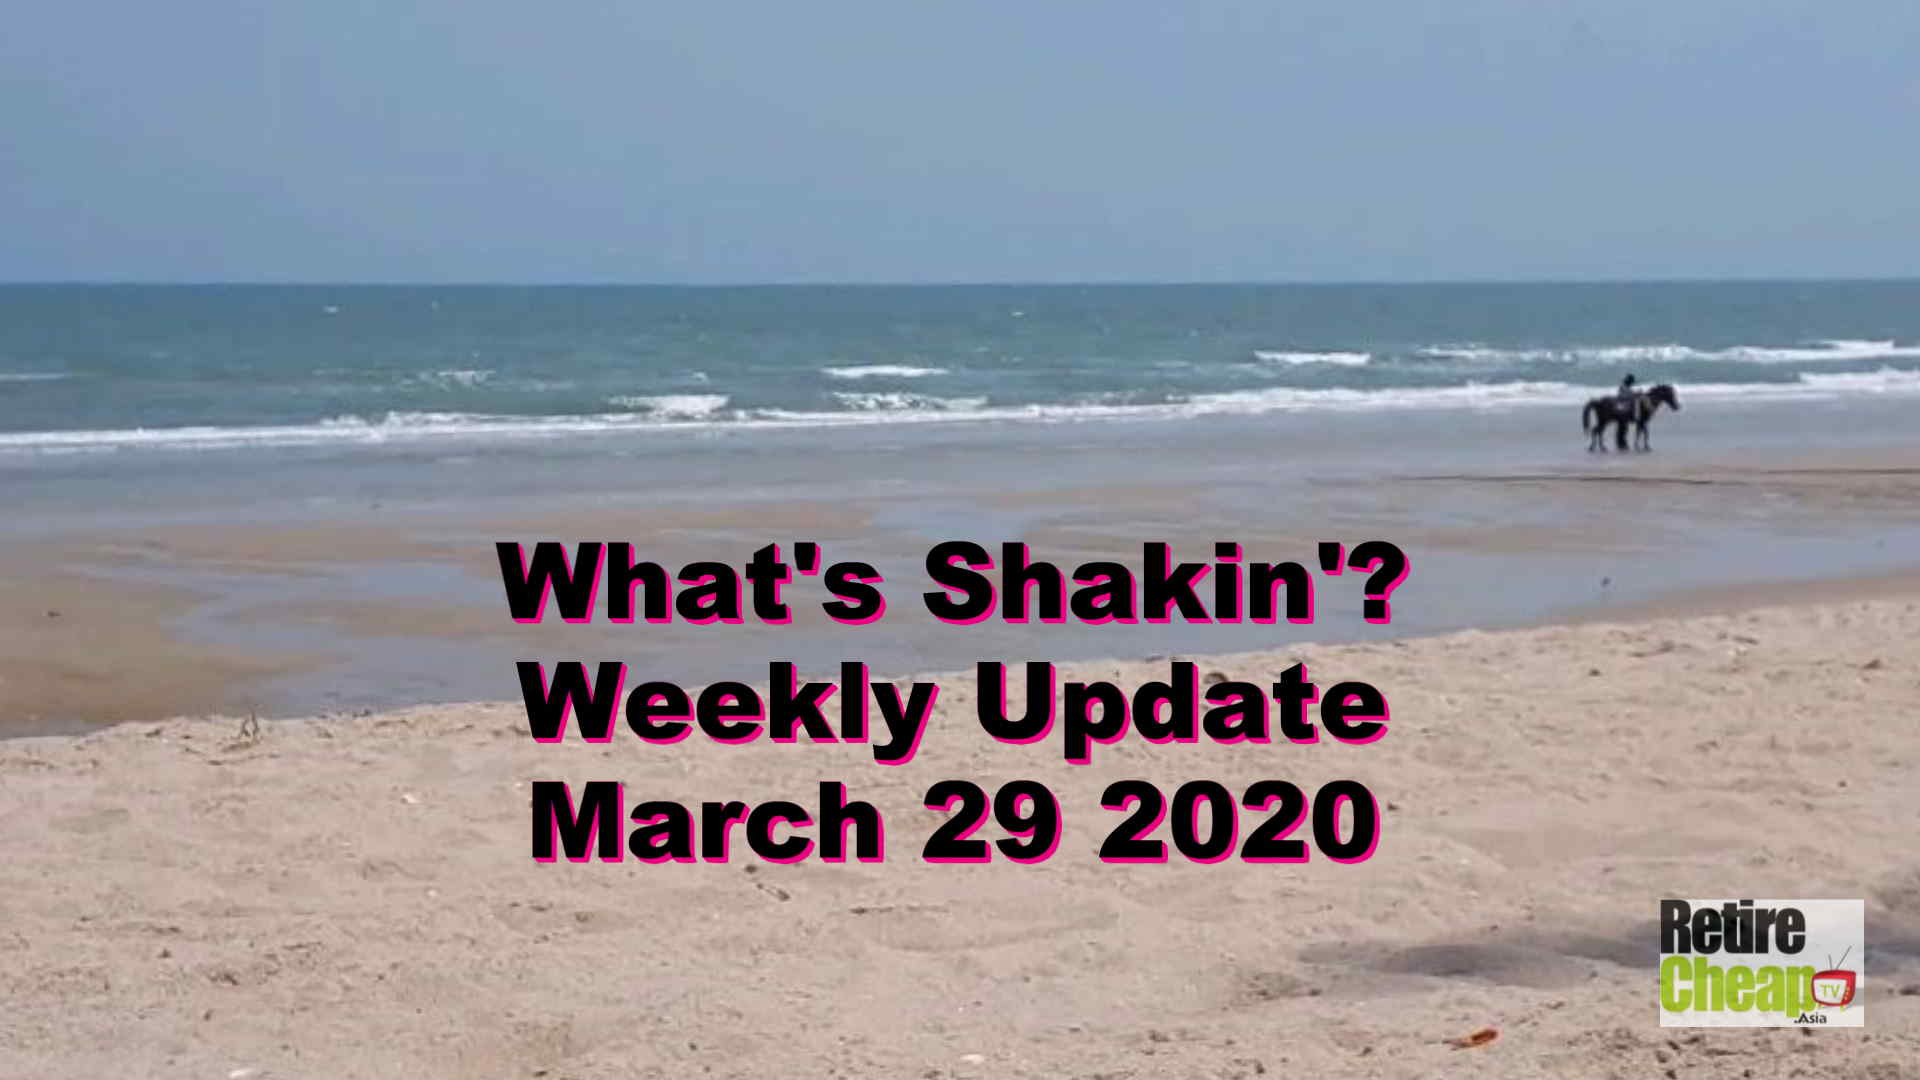 What's Shakn'? Week March 29 2020